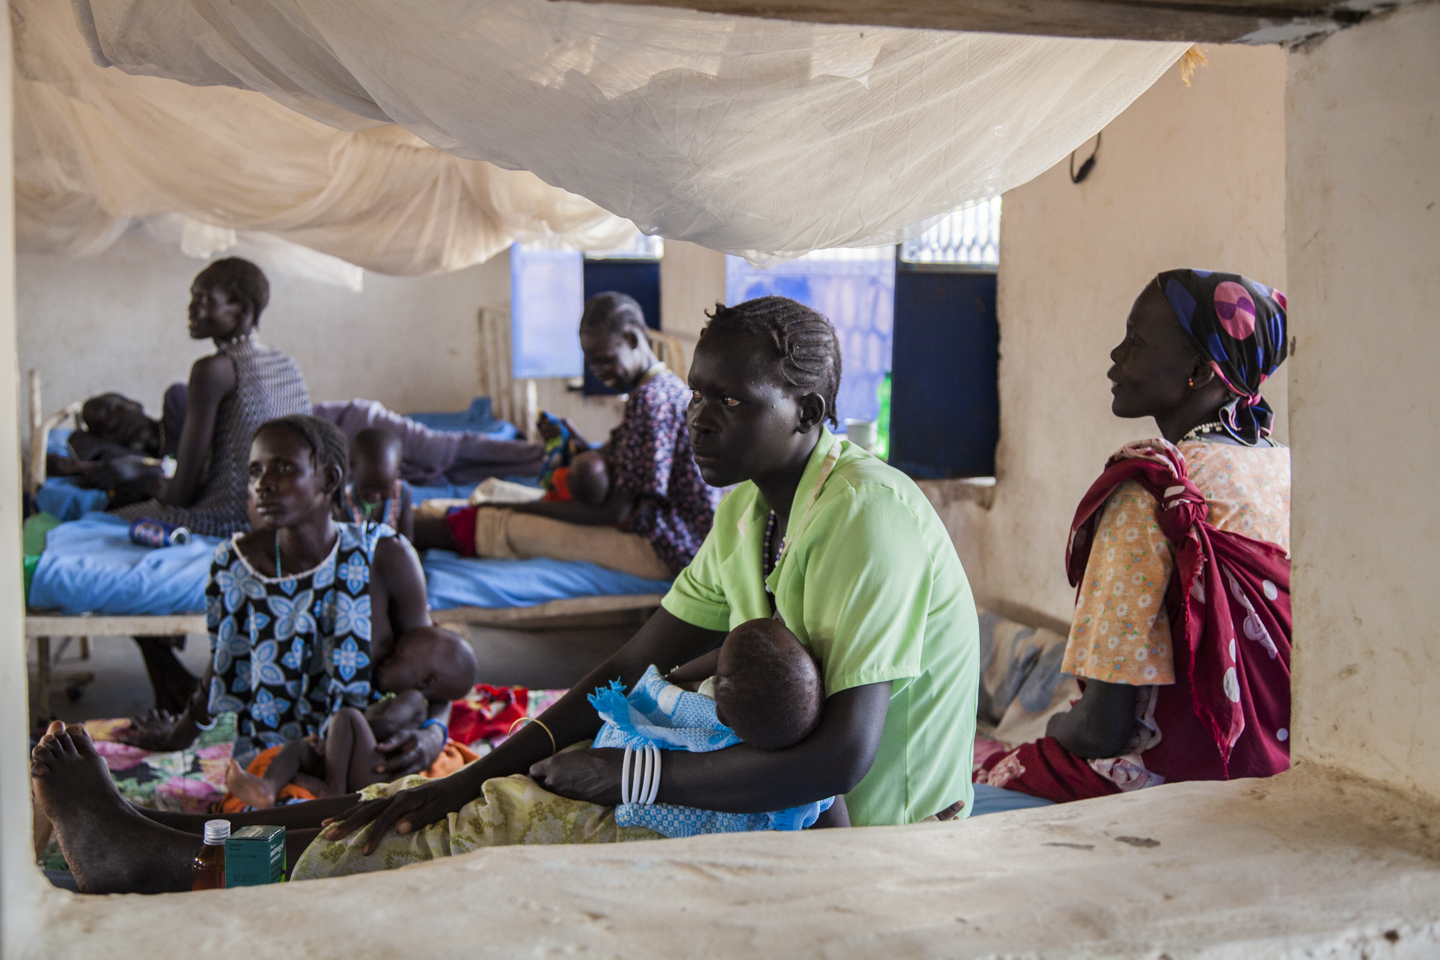 Women and their children rest in the inpatient ward of the Malualkon Primary Health Care Center in Malualkon, South Sudan, June 1st, 2012.